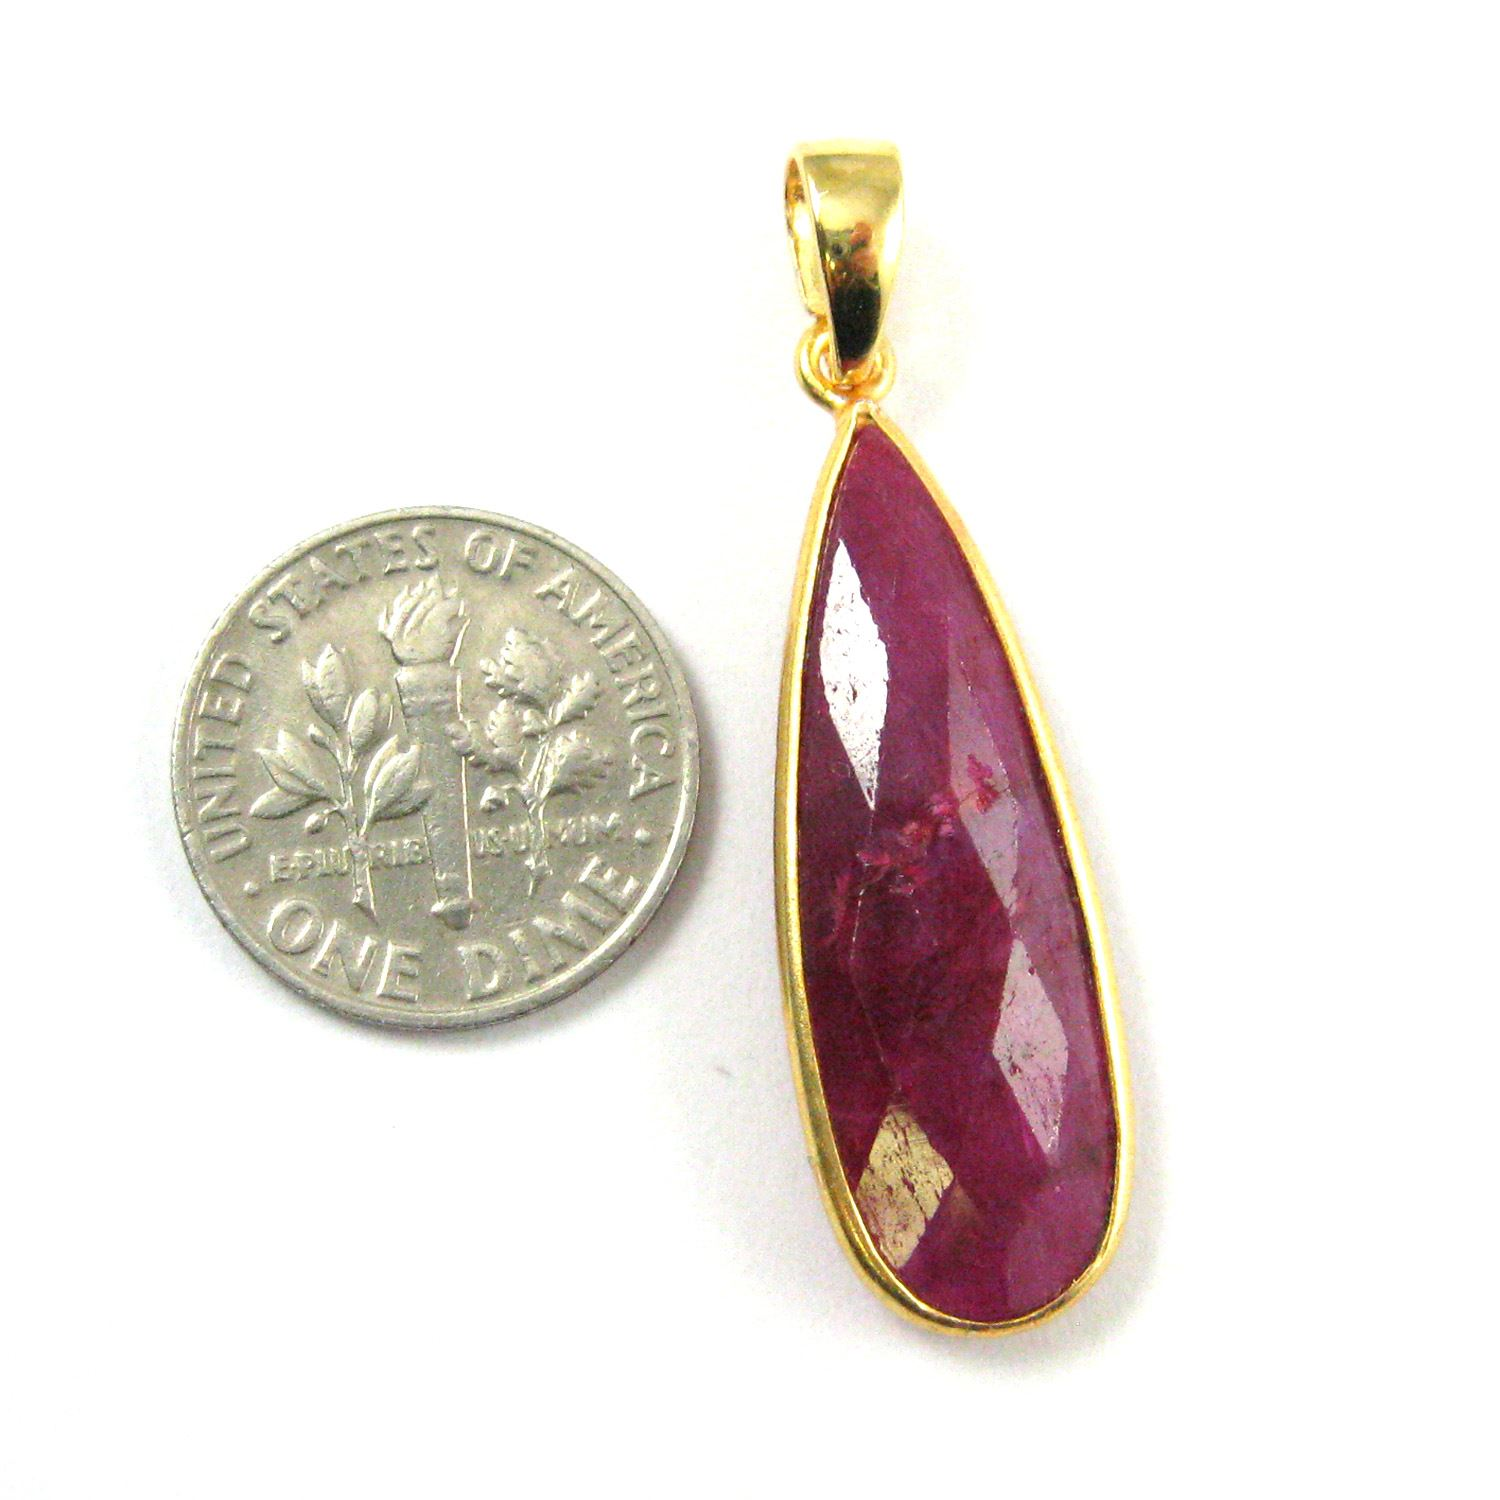 Bezel Gemstone Pendant with Bail - Gold plated Sterling Silver Elongated Teardrpo Gem Pendant - Ready for Necklace - 40mm - Ruby Dyed